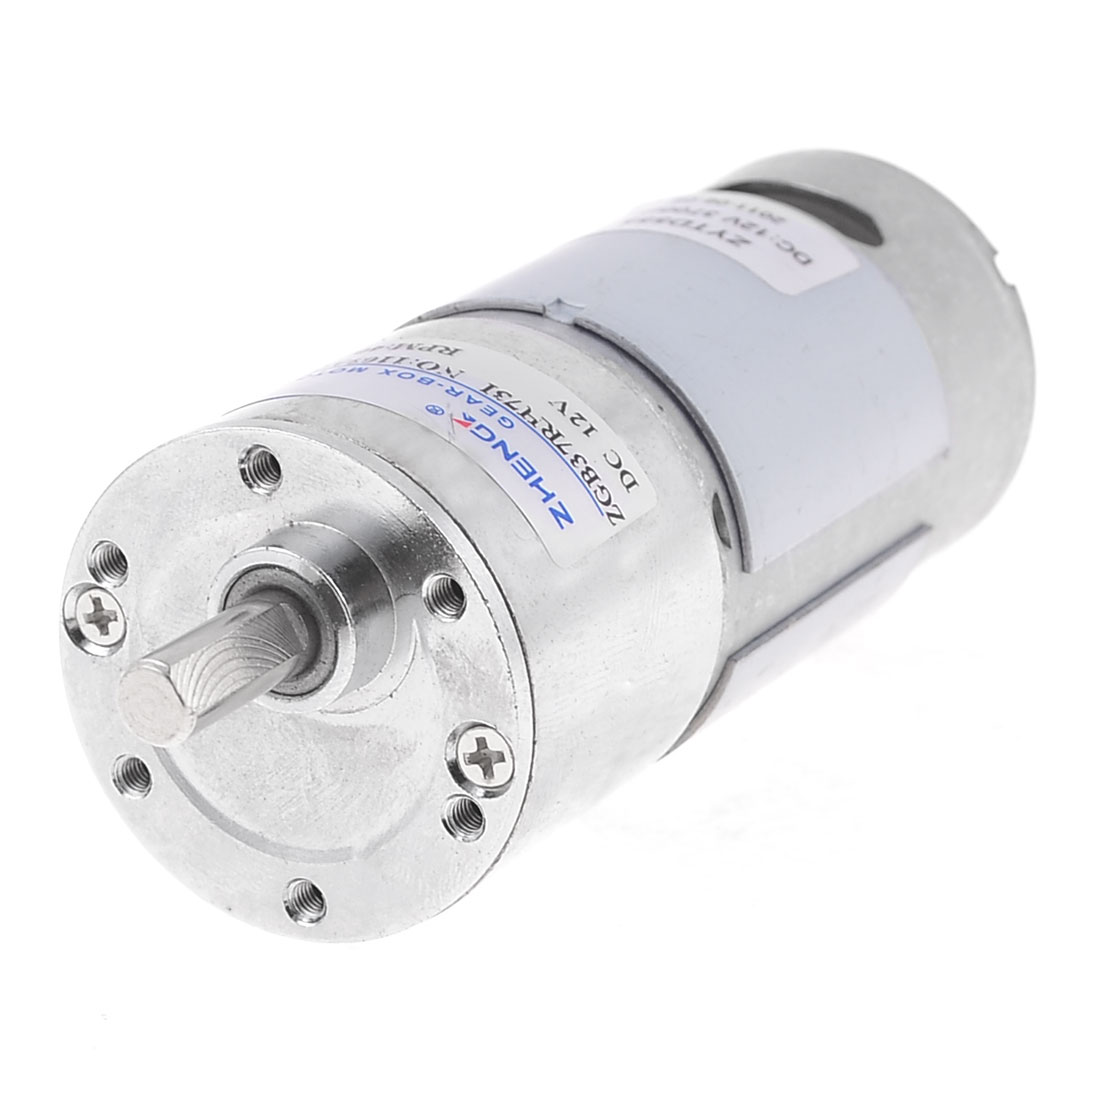 DC-12V-Torque-6mm-Shaft-35mm-Dia-Magnetic-Geared-Motor-3700RPM